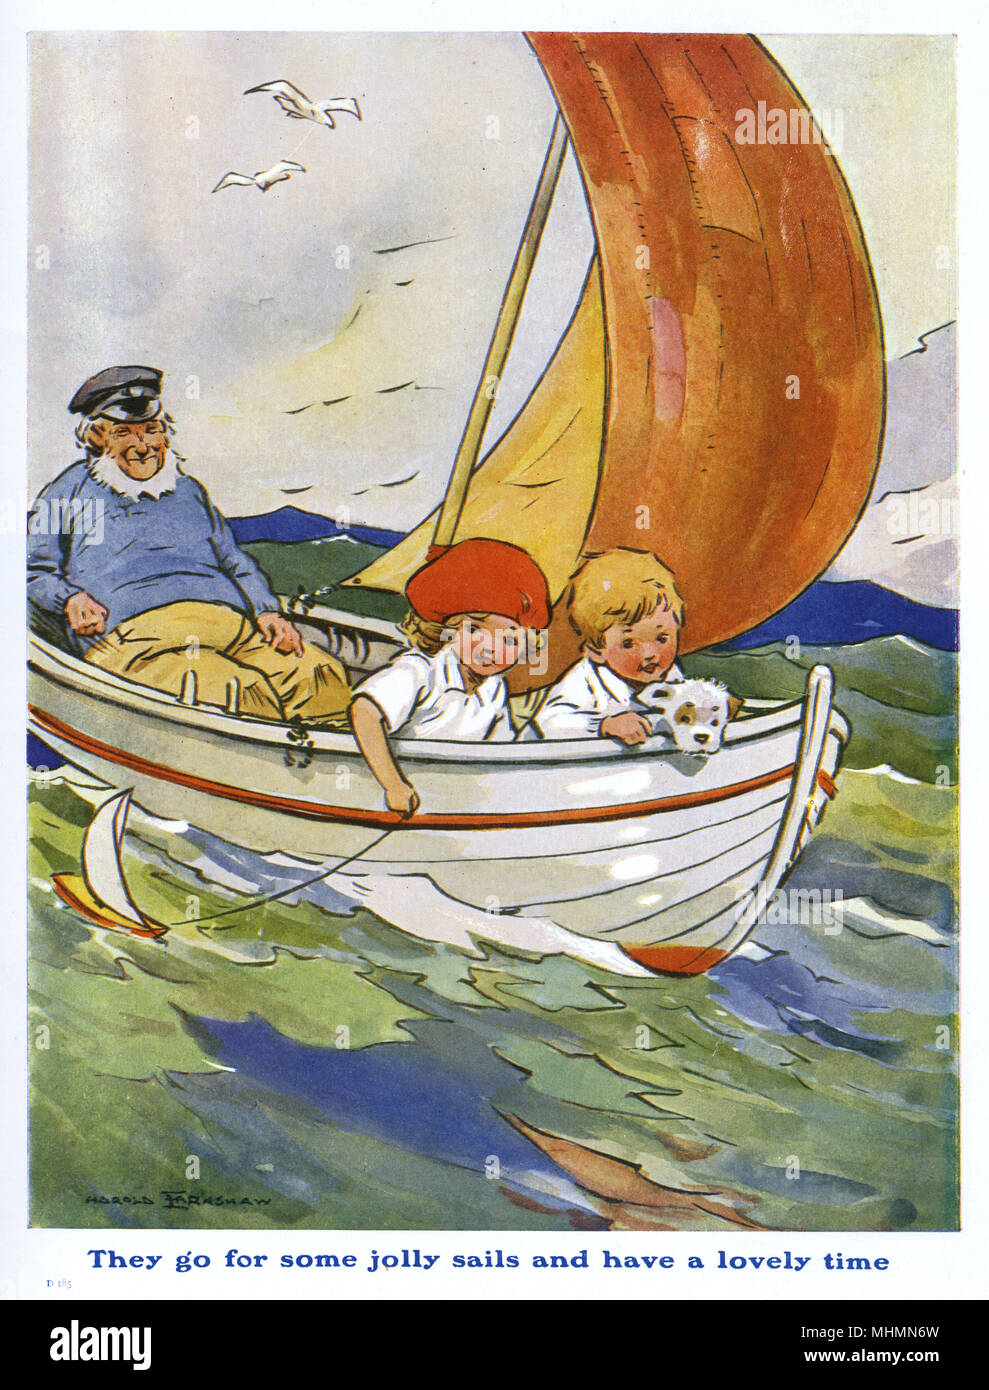 Two children and their dog go for a bracing ride in a sailing boat accompanied by a jolly old sea salt.     Date: c.1920 - Stock Image